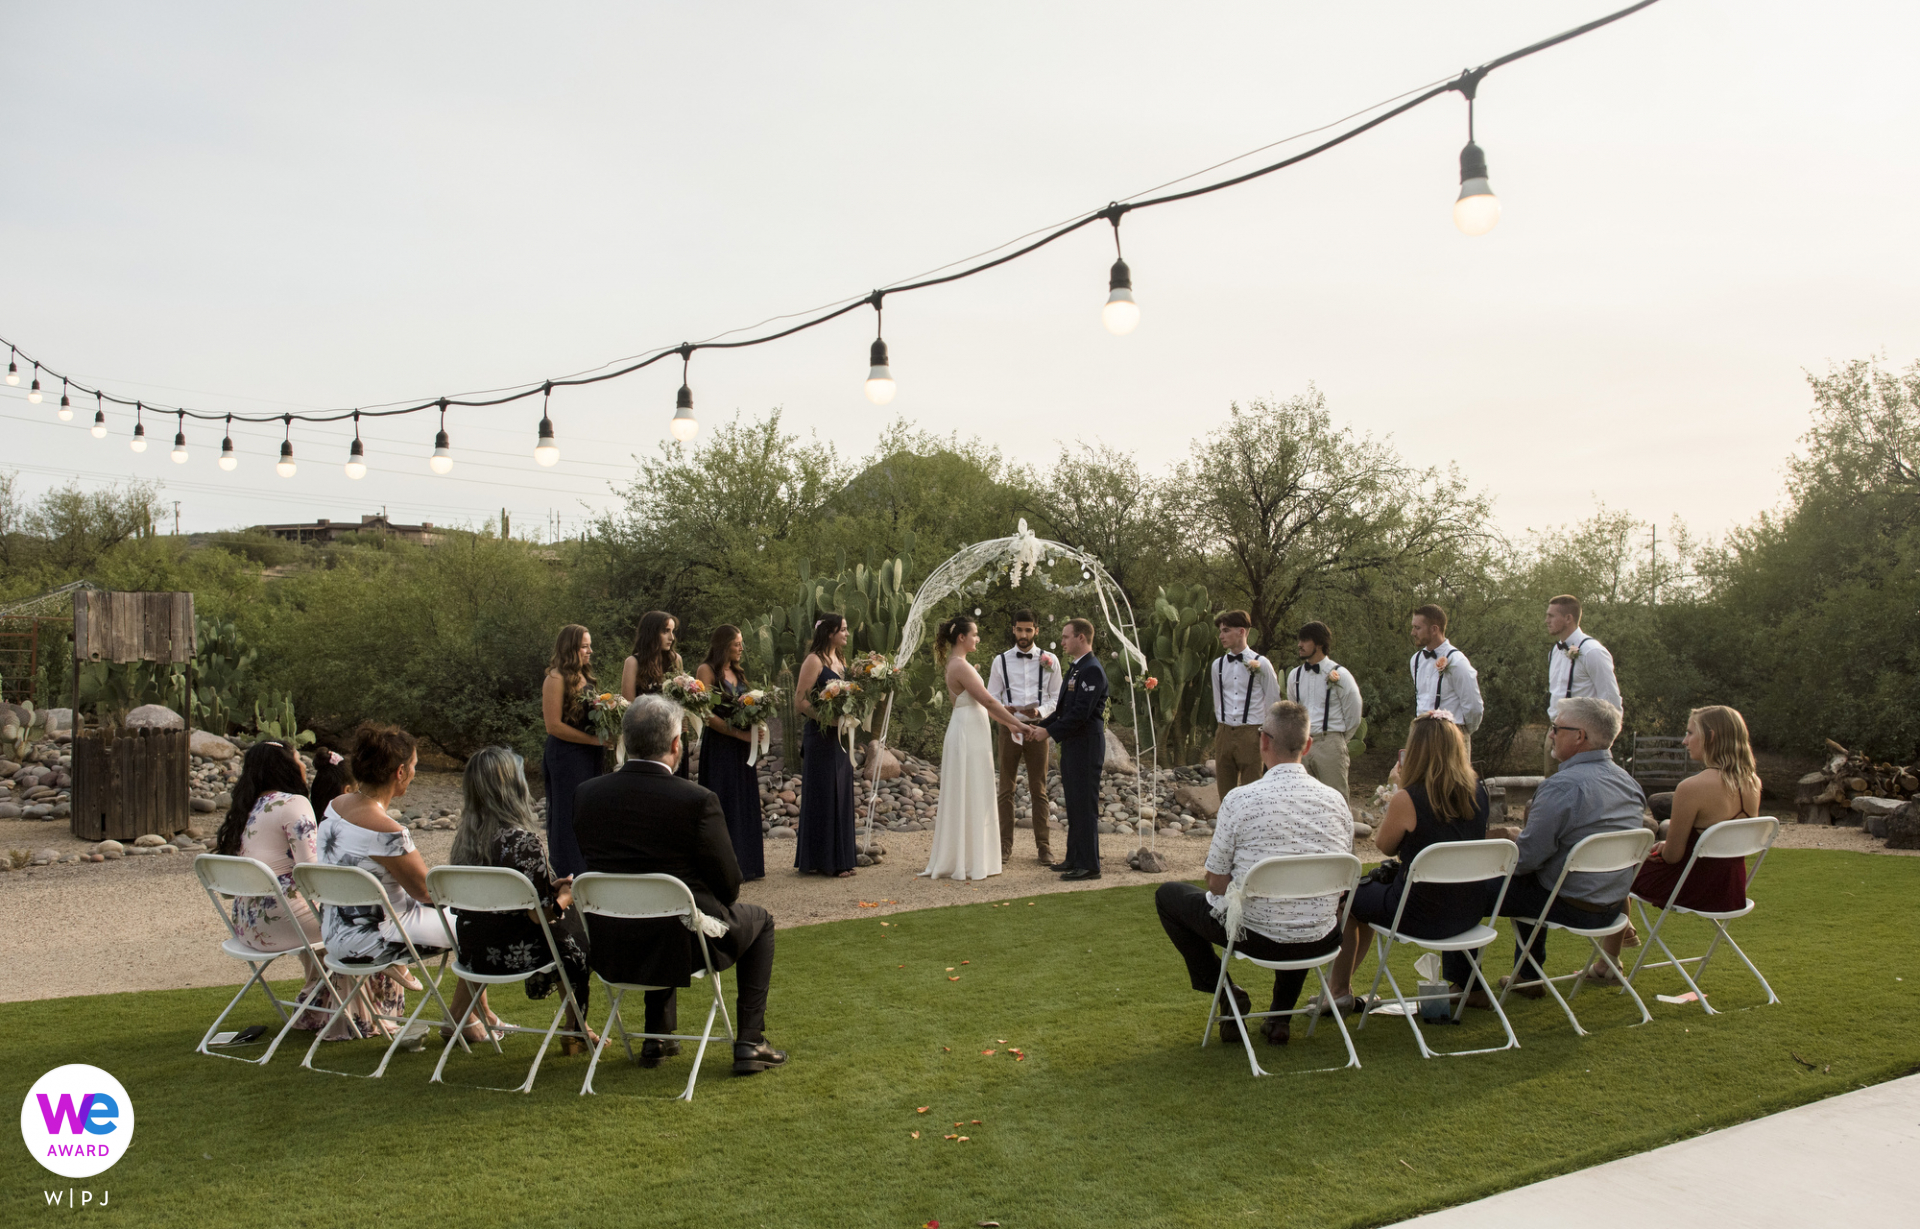 Wedding Photography - New River, AZ | The bride and groom commit themselves to one another